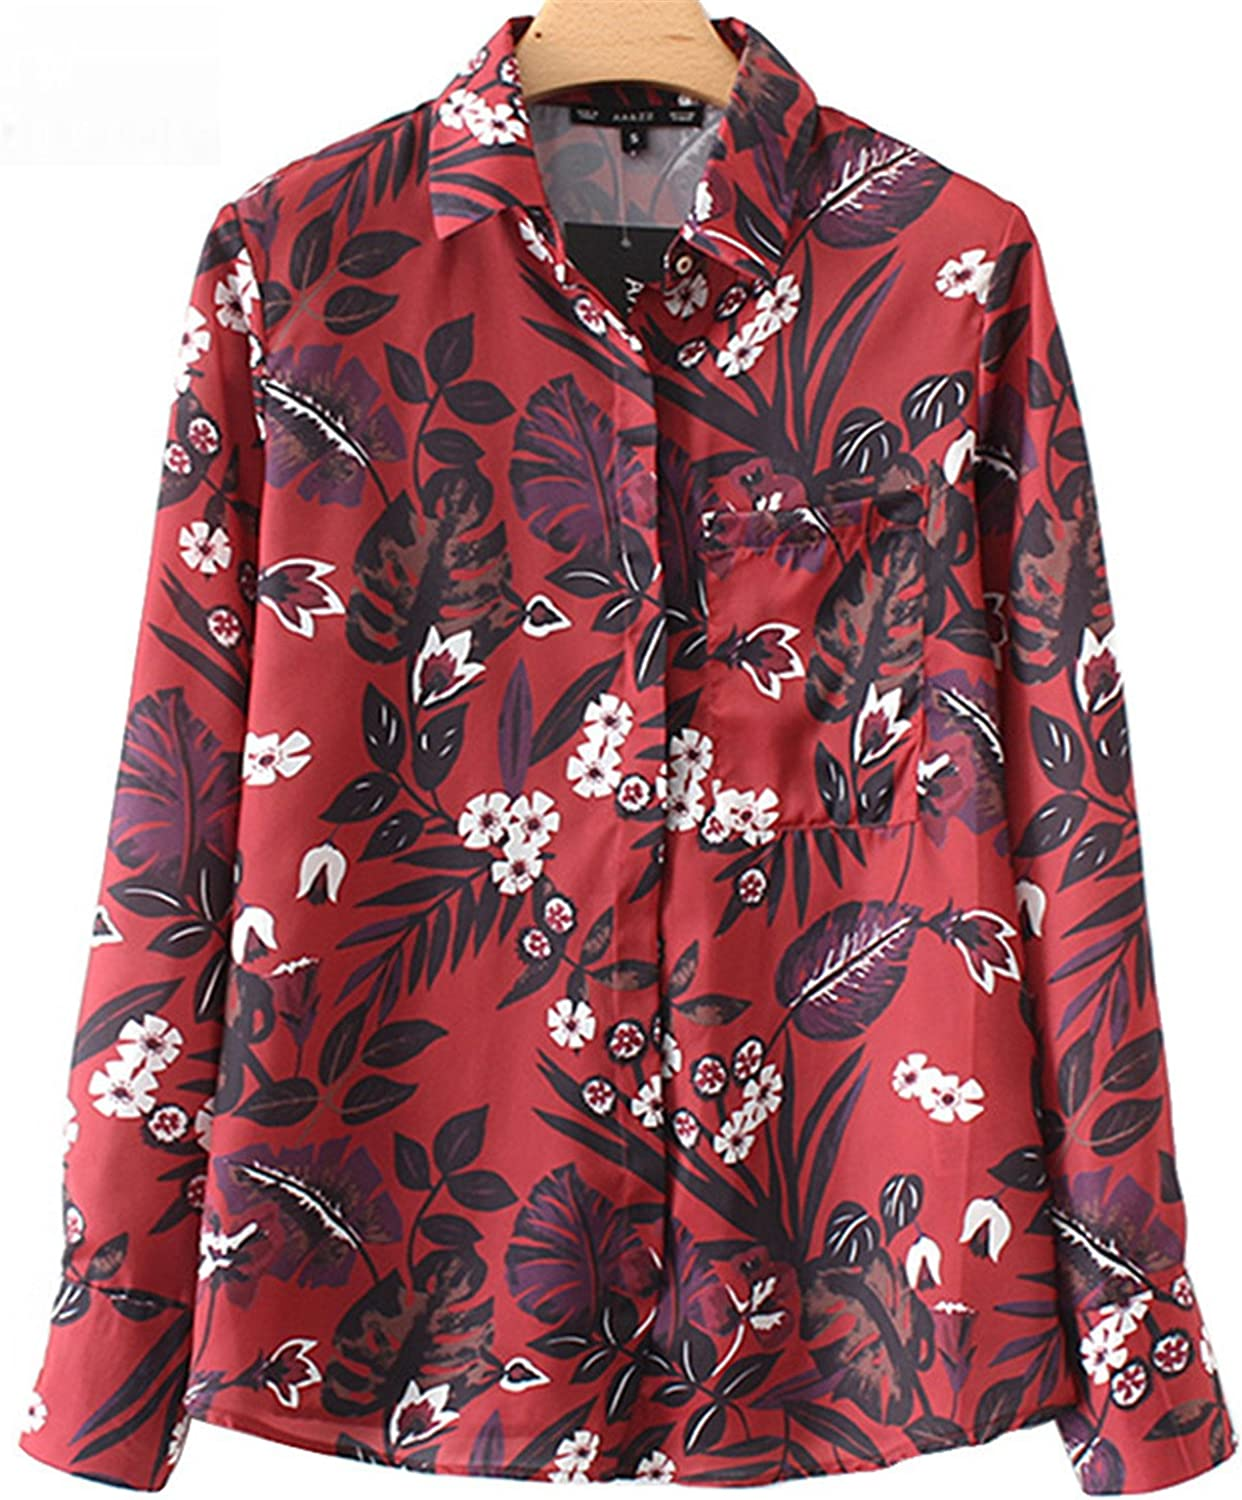 Floral Print Women Blouse Turn-Down Collar Red Shirts Women Autumn Long Sleeve Casual Office Women Tops Xy2963